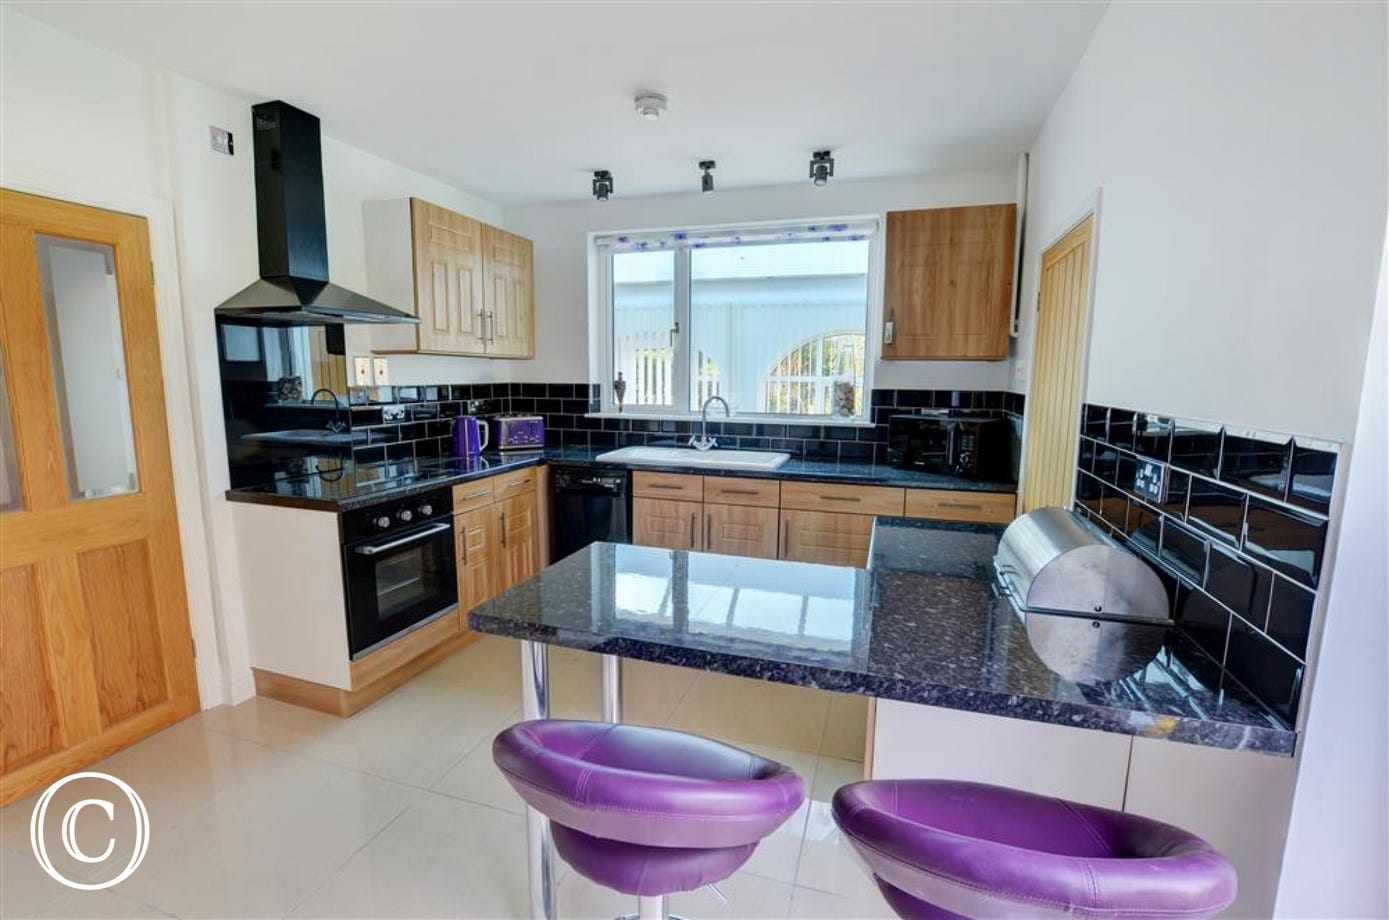 Very mosern, well equipped kitchen with breakfast bar area